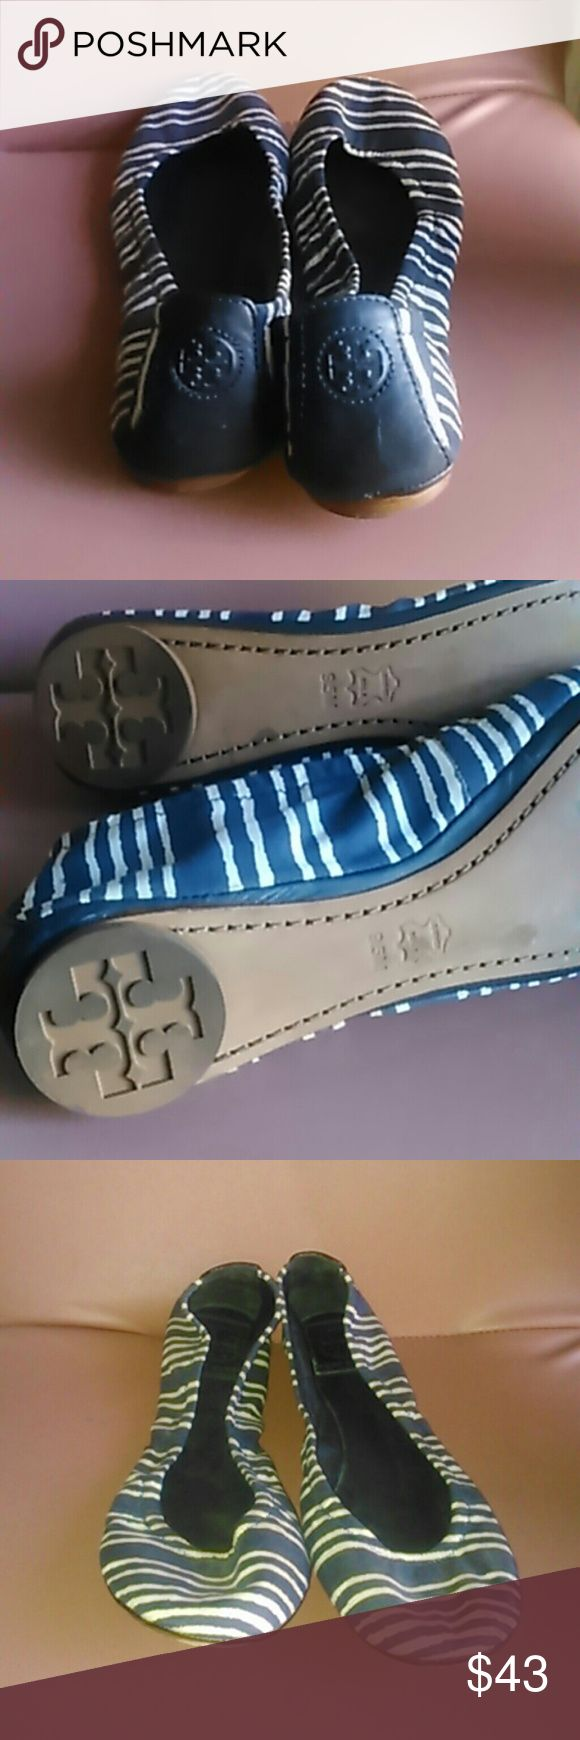 Tory Burch 9.5 flats blue striped ballet shoes Leather & canvas, pre-owned, no defects. Tory Burch  Shoes Flats & Loafers